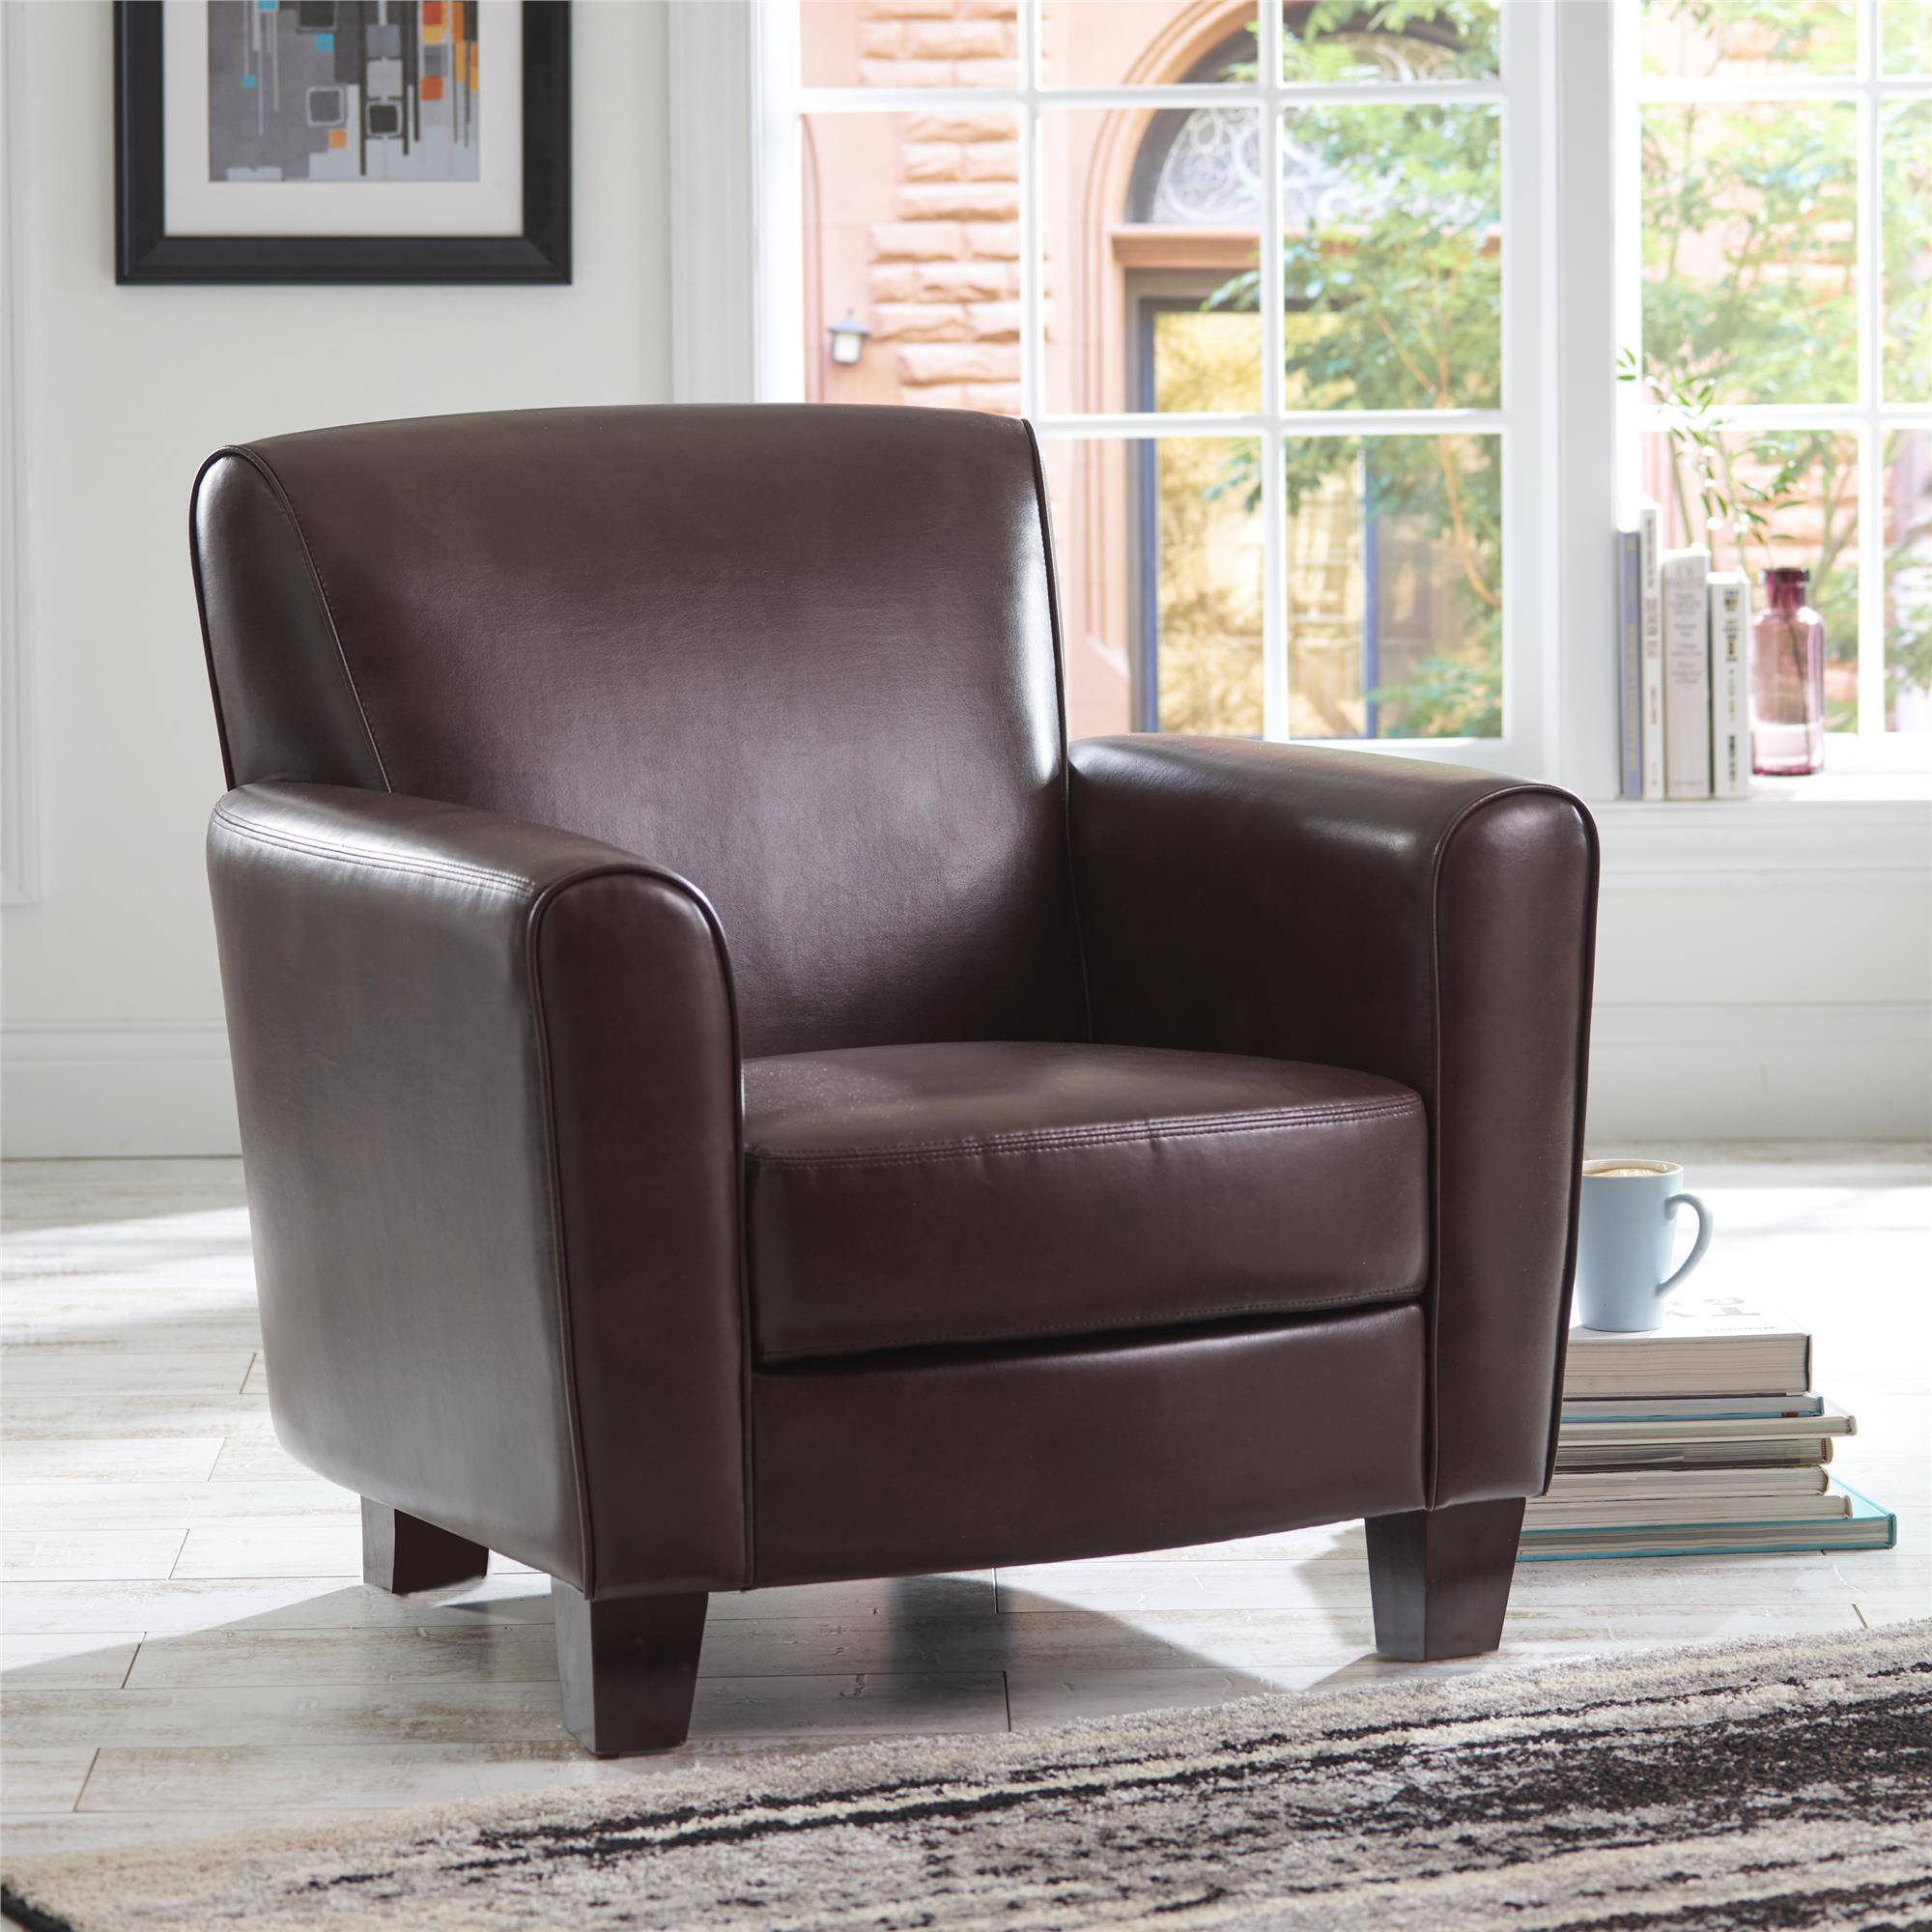 Better Homes and Gardens Ellis Club Chair, Brown